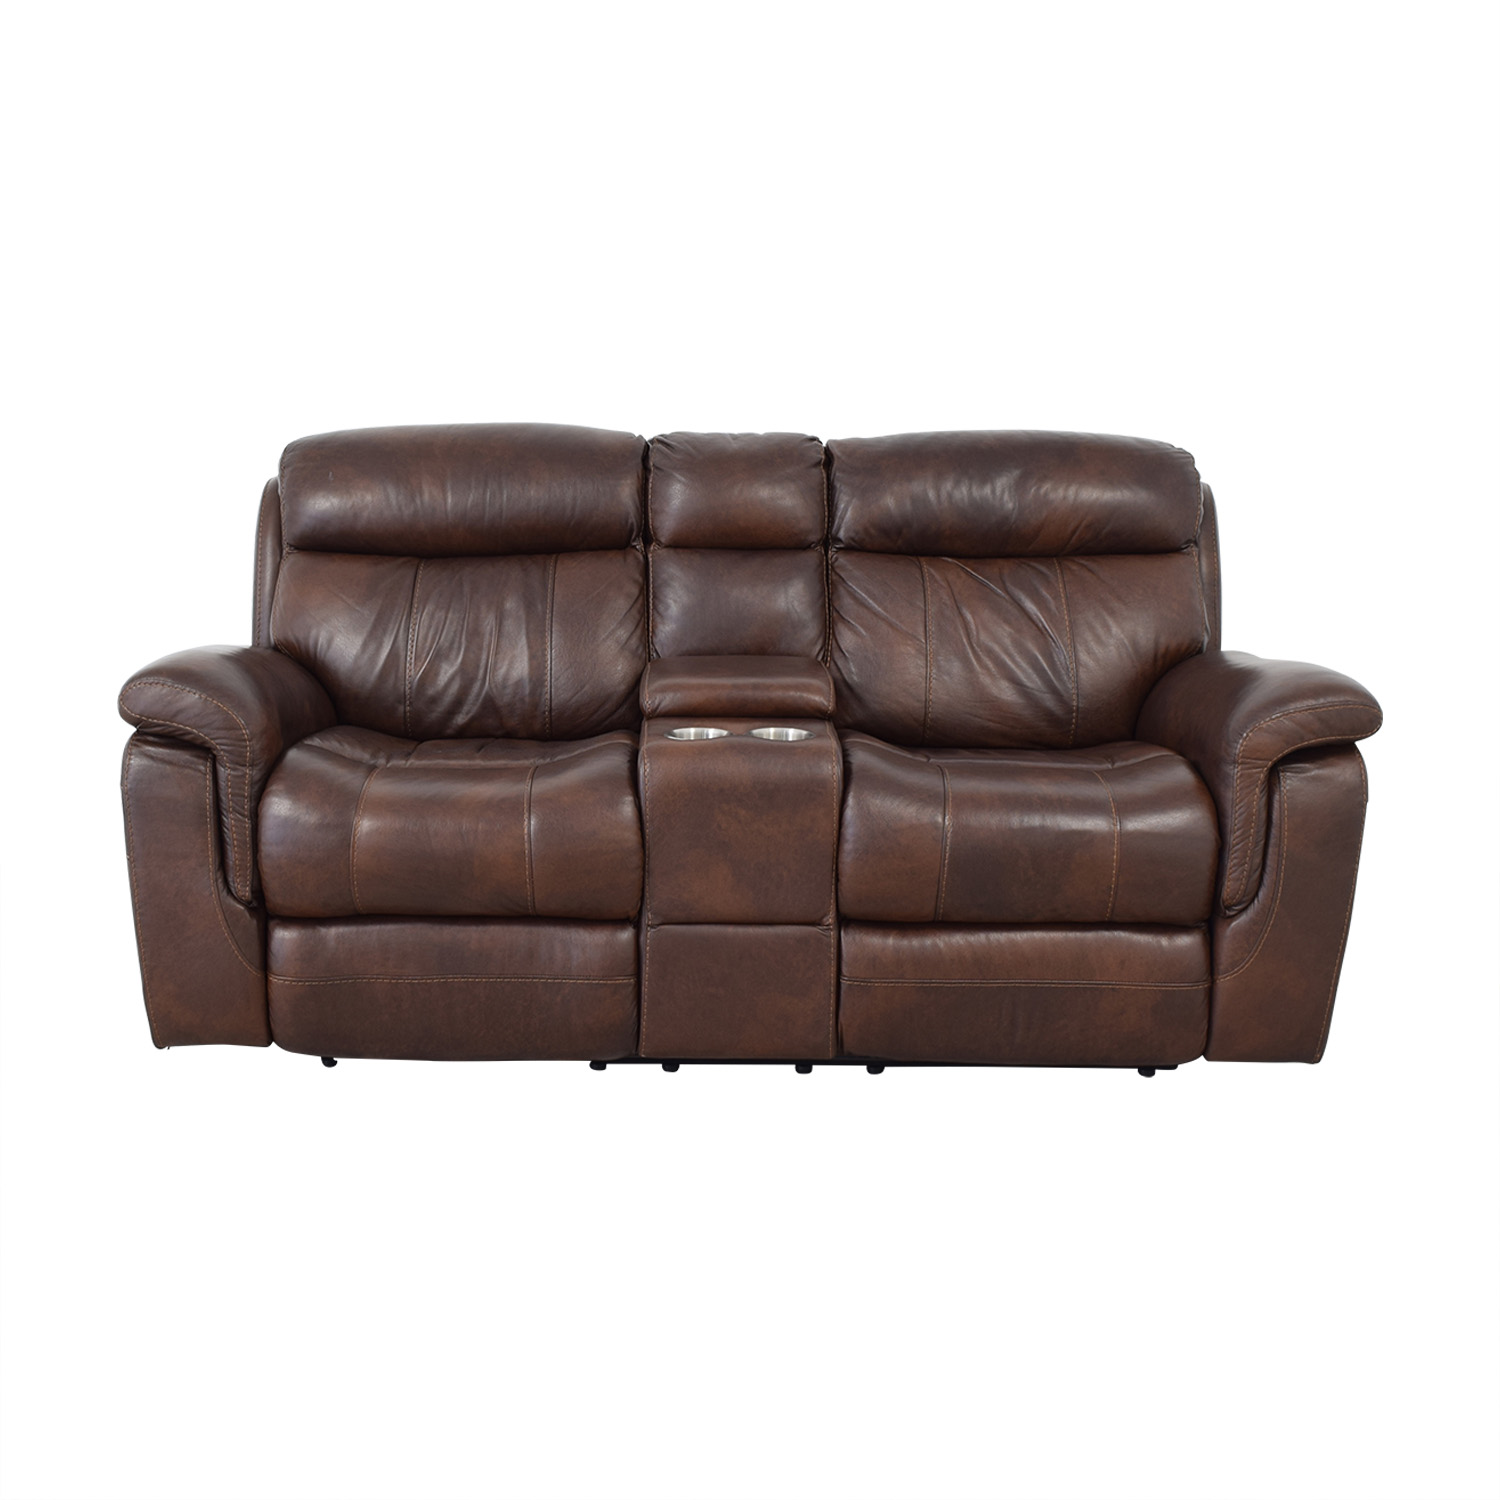 Costco Costco Davis Two-Piece Power Recliner on sale